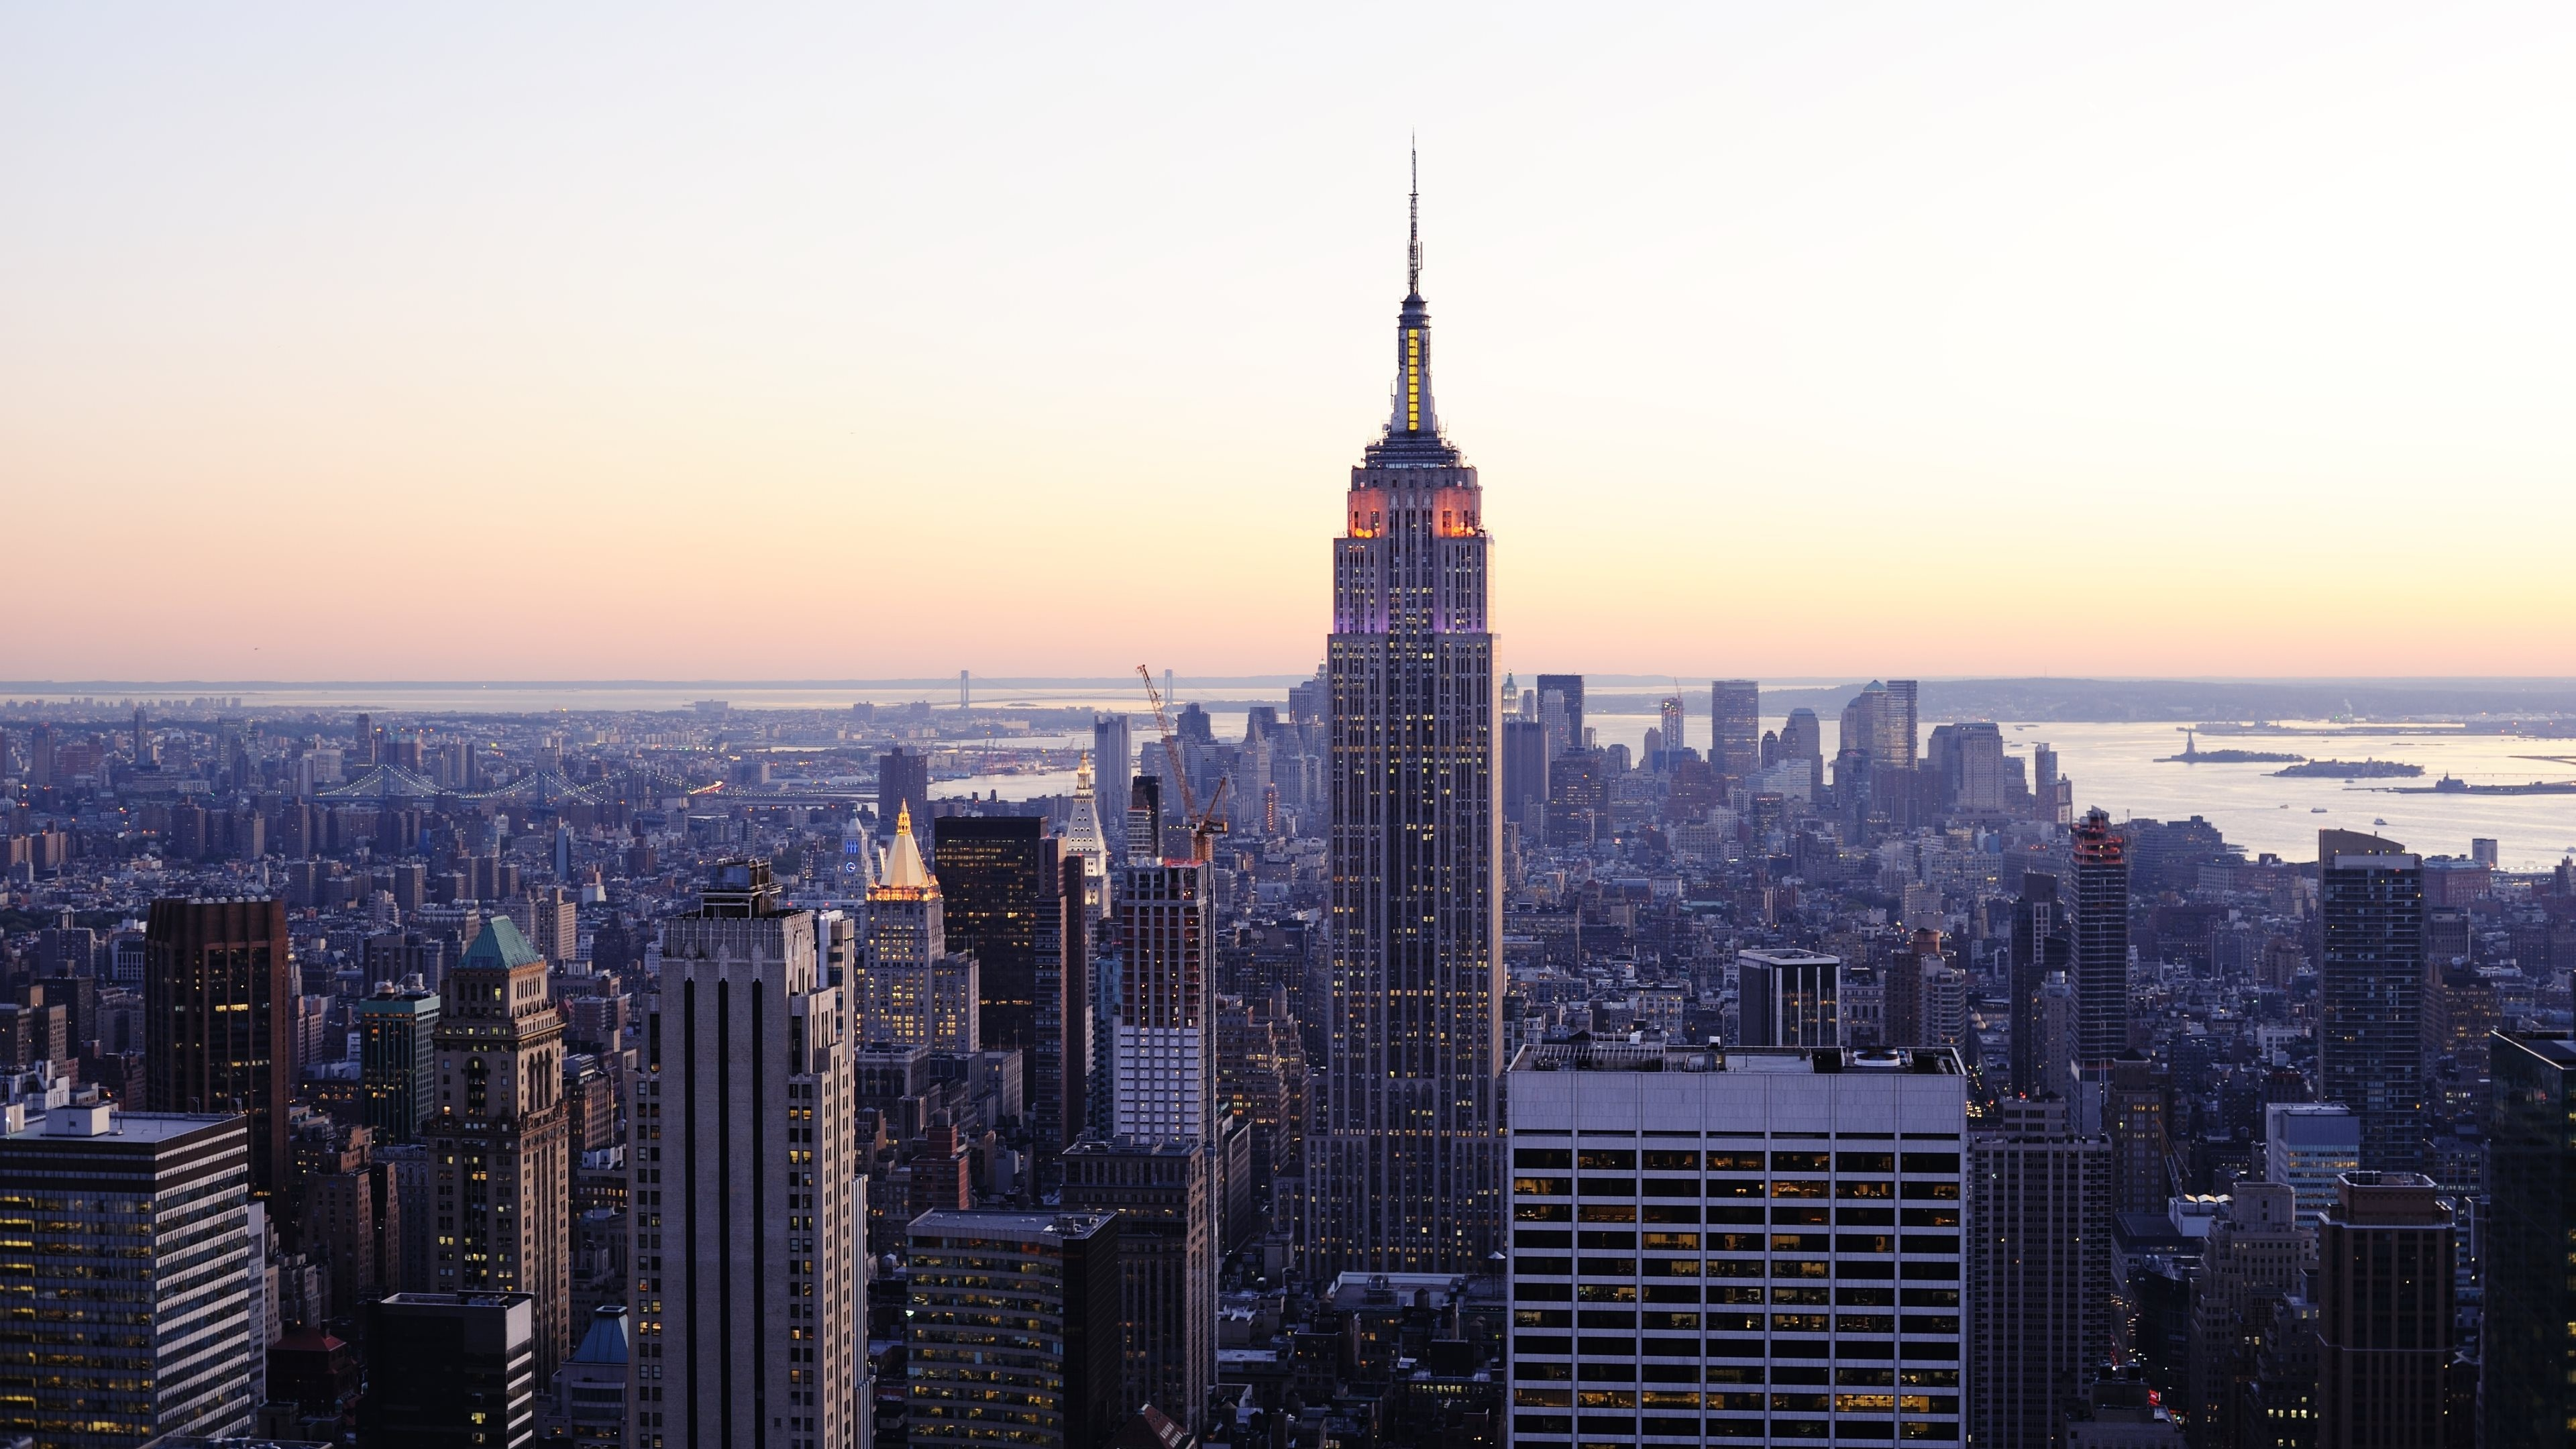 18 Hd Empire State Building Wallpapers Hdwallsource Com